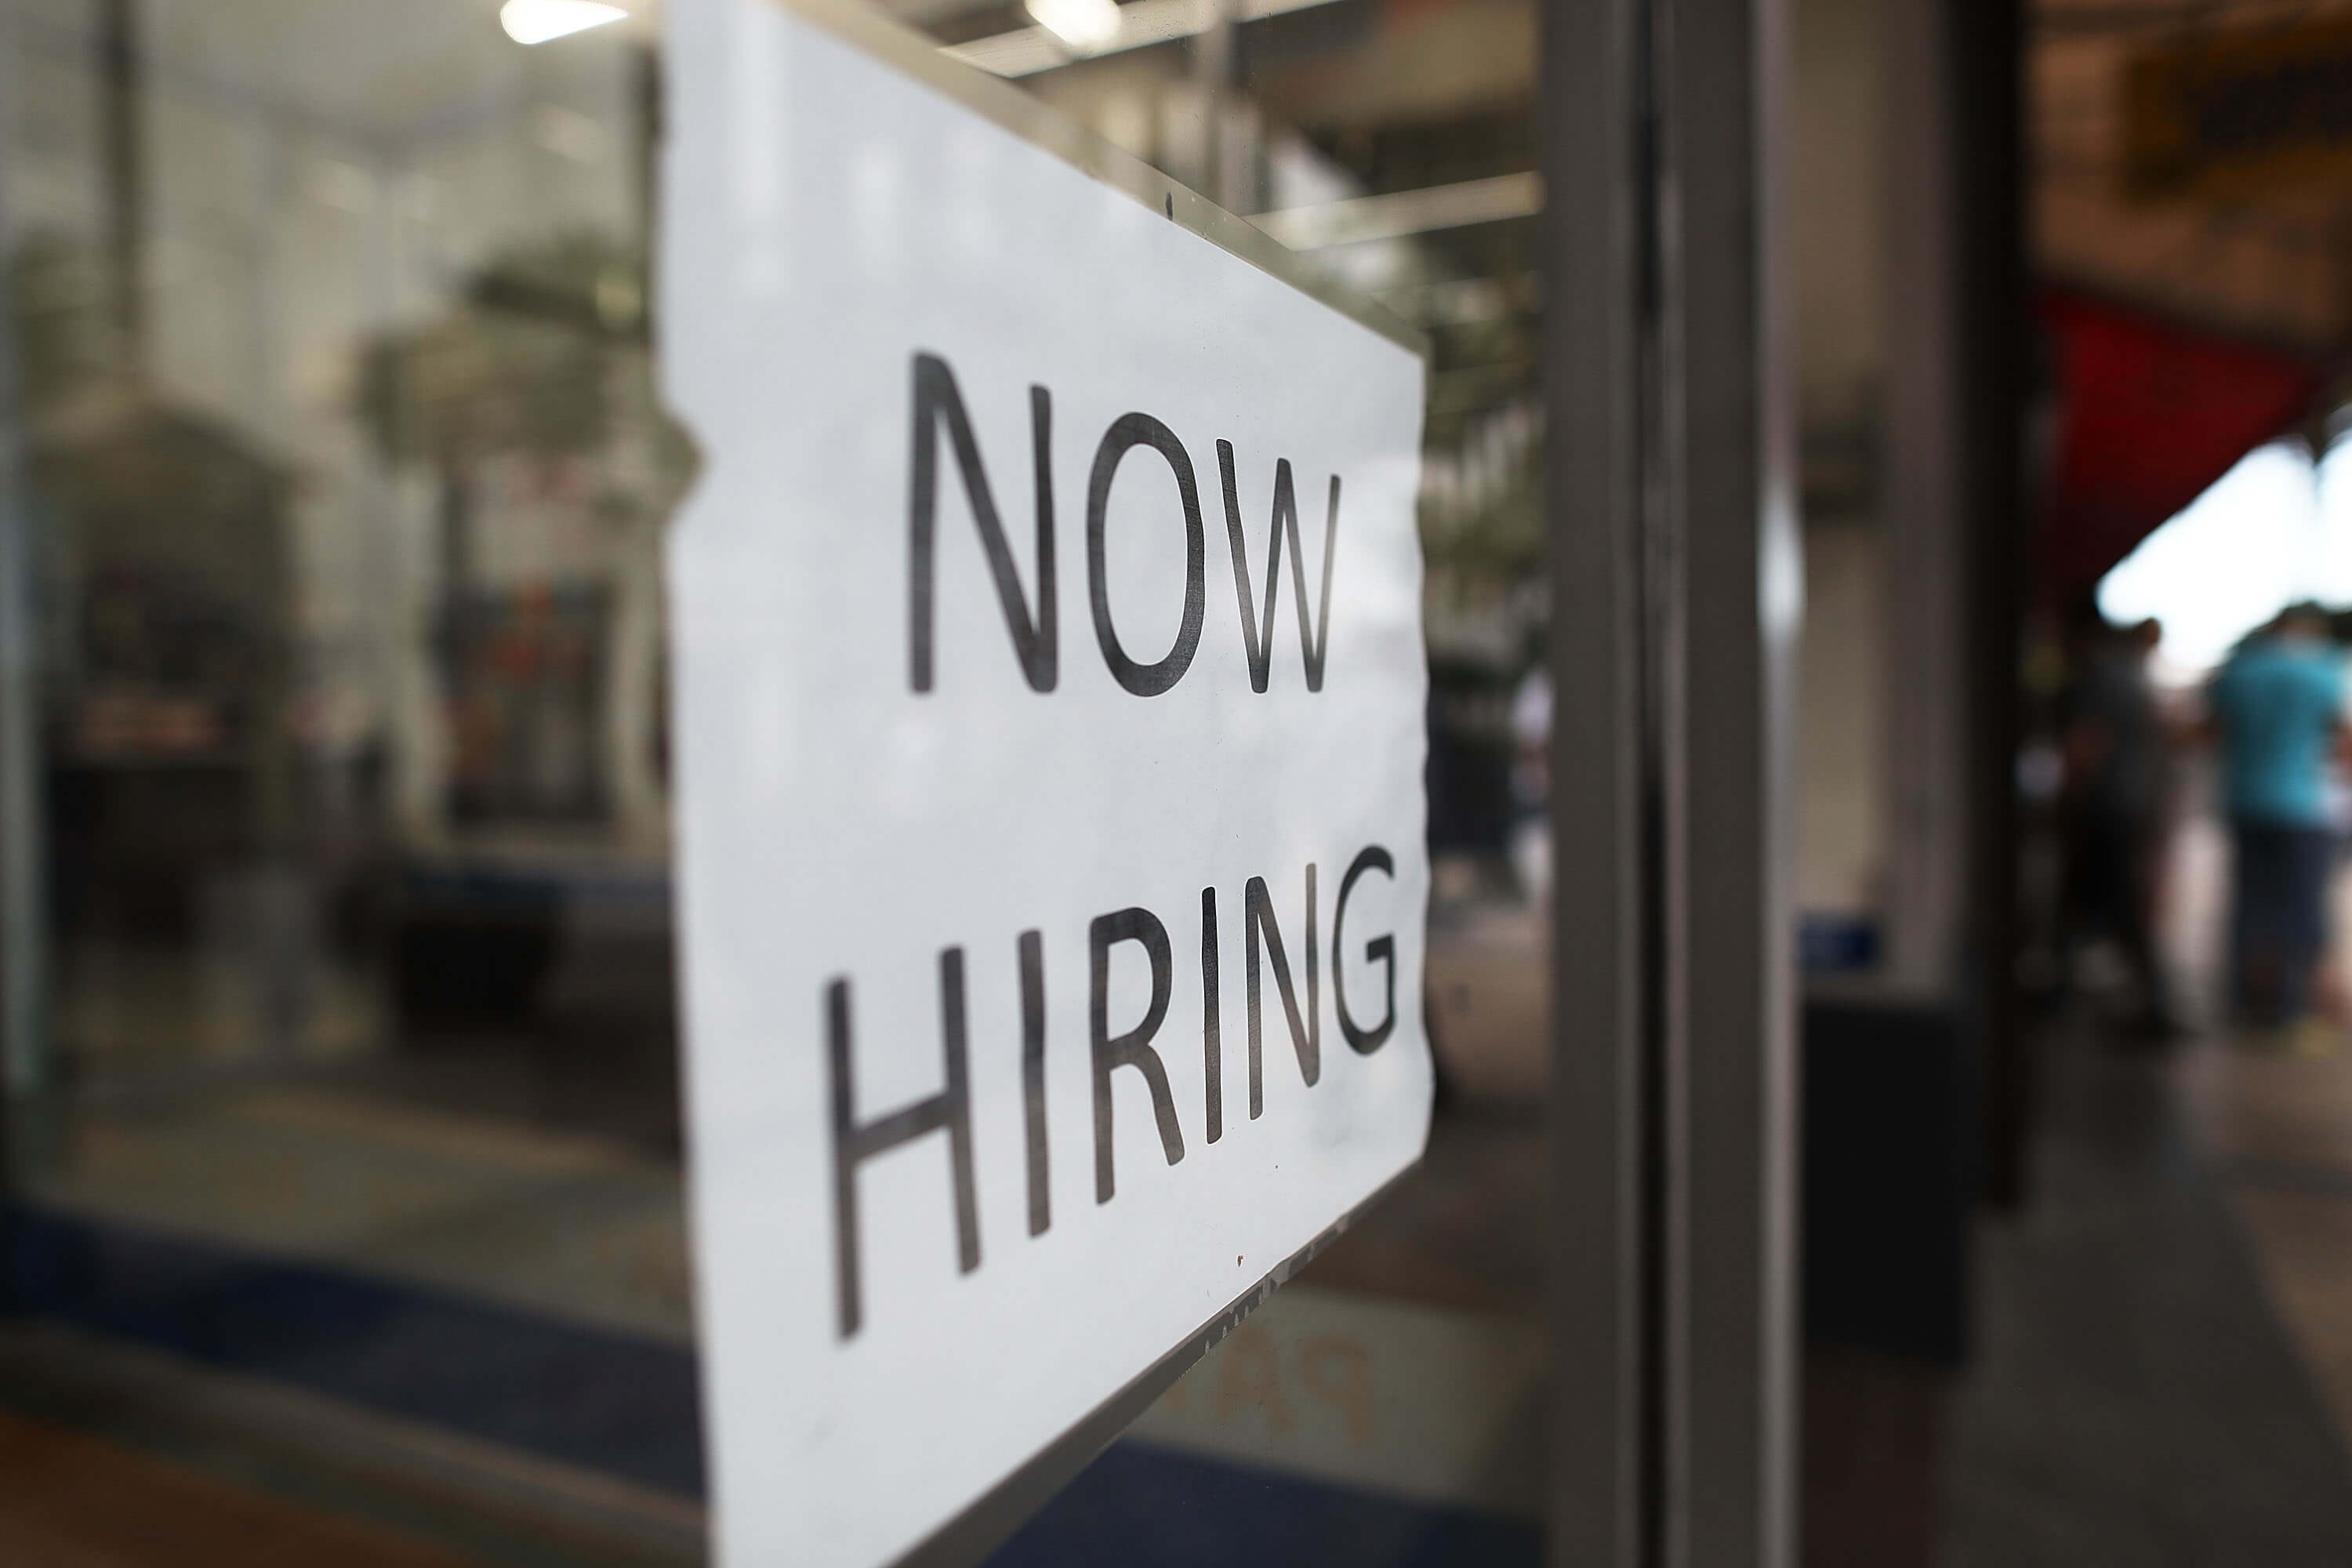 Official Unemployment Rate Drops to Lowest Point in 10 Years